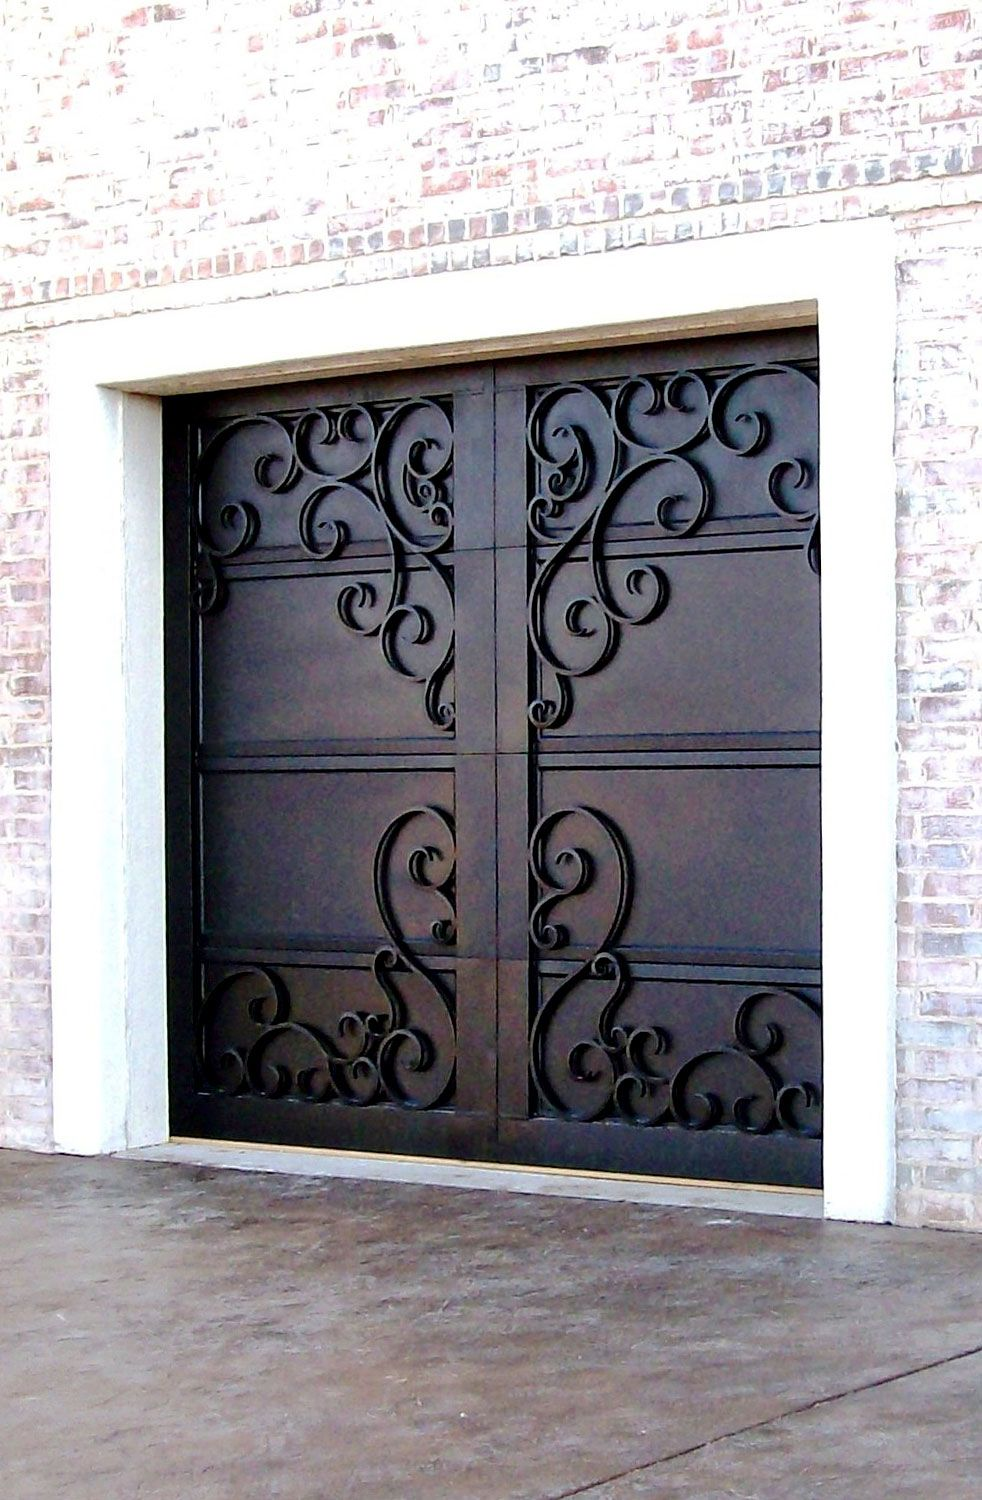 Cantera Doors provides hand-forged custom-made iron staircase u0026 balcony railings for & Cantera Doors provides hand-forged custom-made iron staircase ... pezcame.com